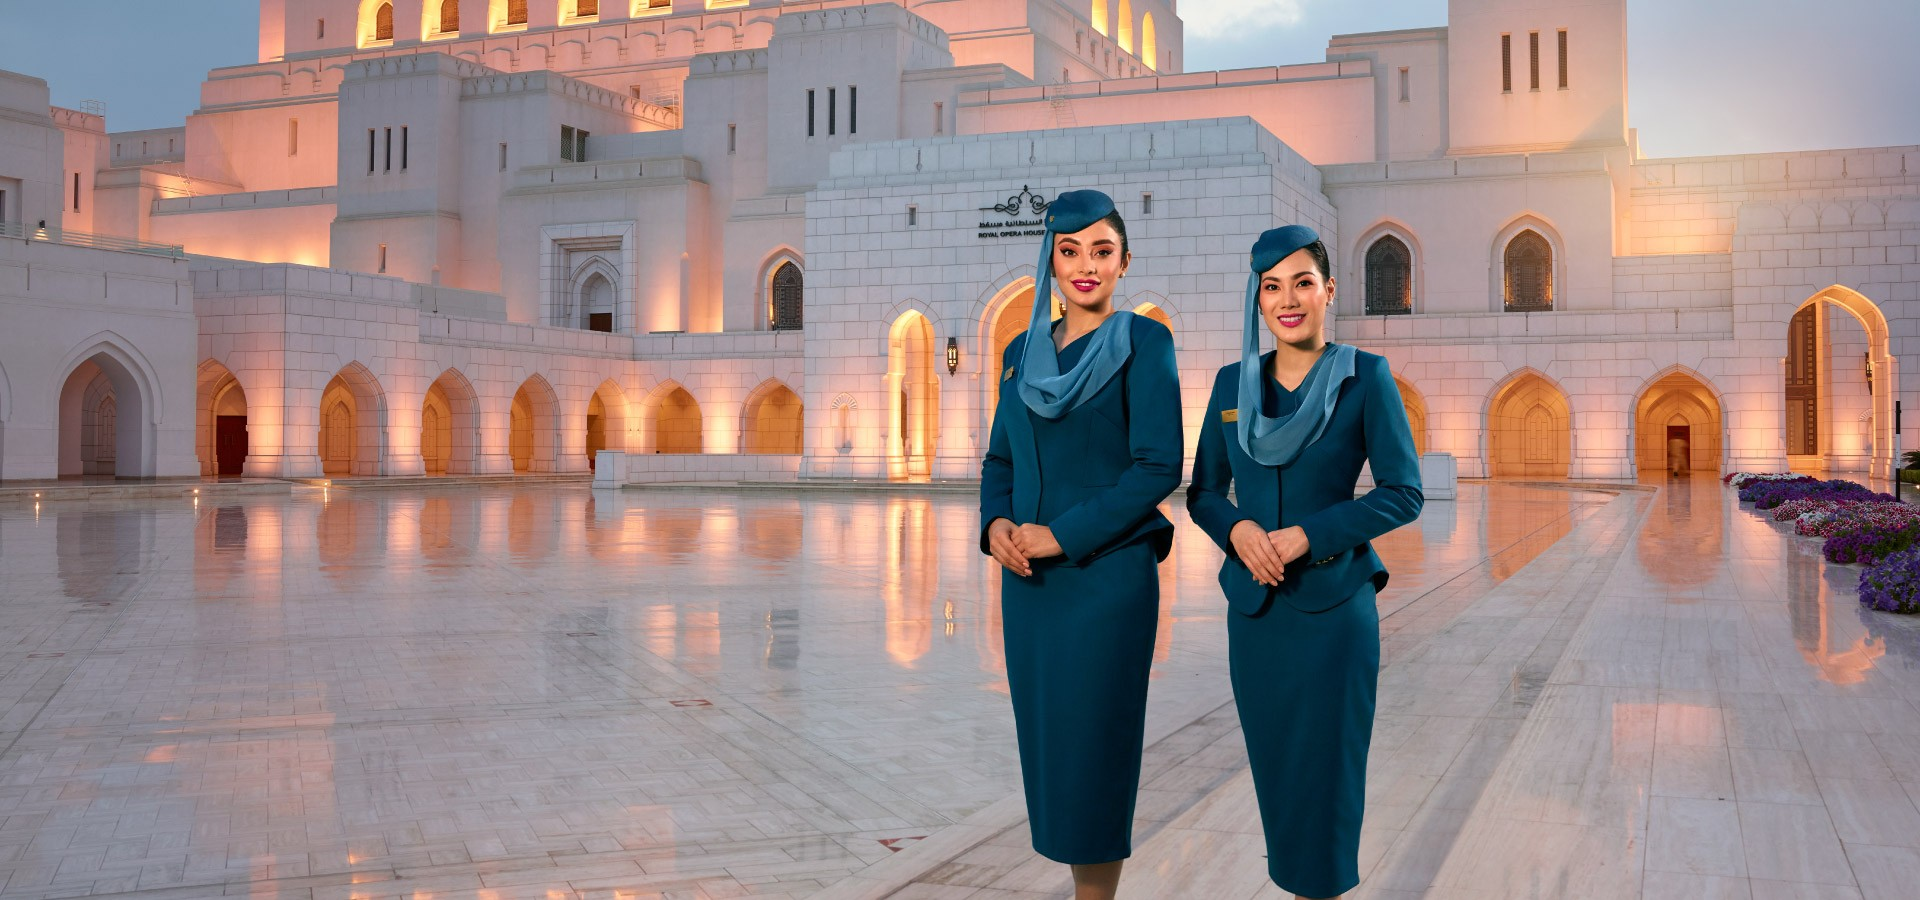 Oman Air Crew in Badiya Desert